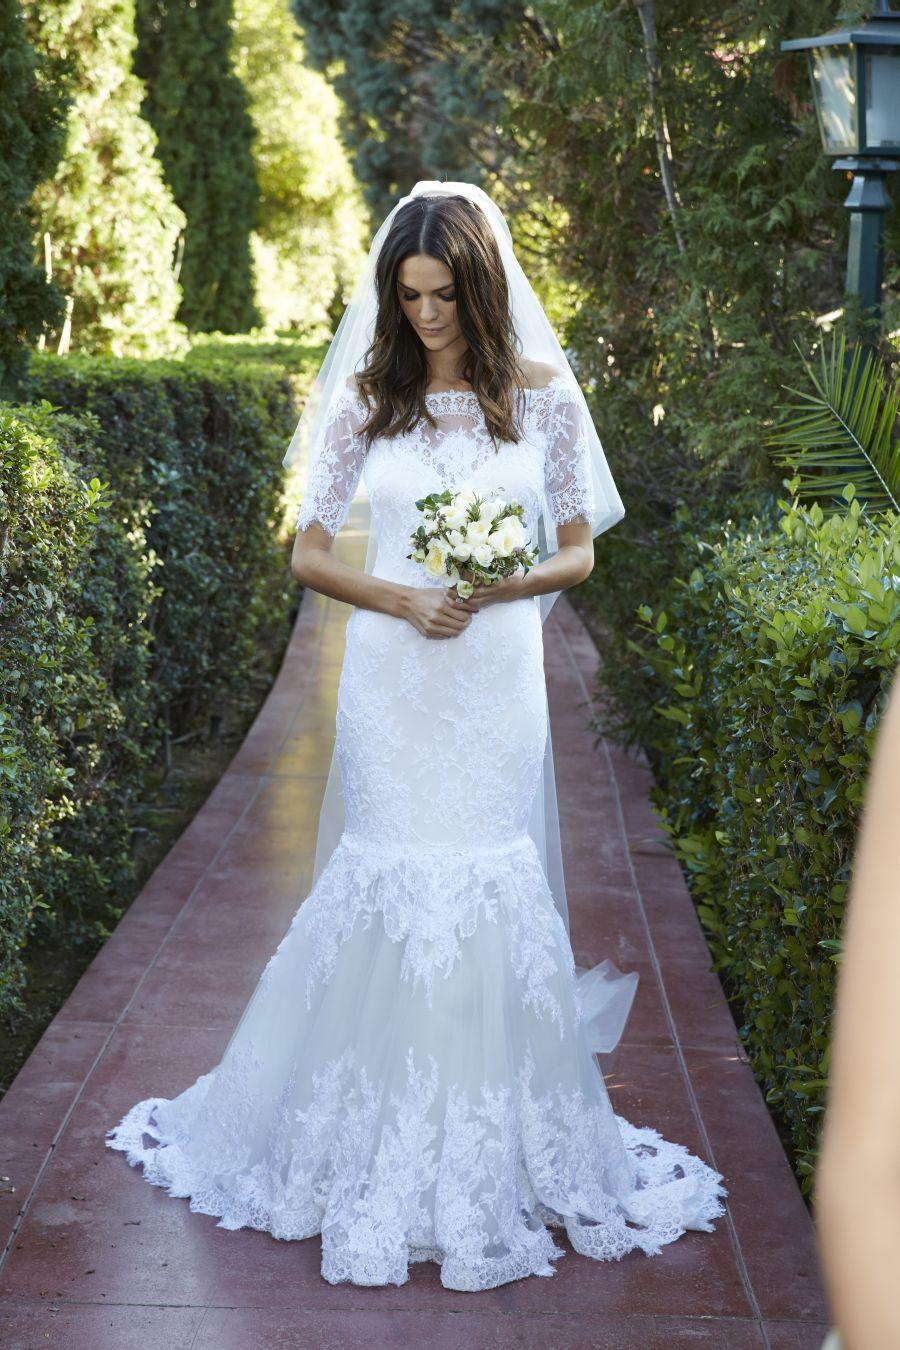 Elegant Beverly Hills Wedding of Allie Rizzo and Scott Sartiano